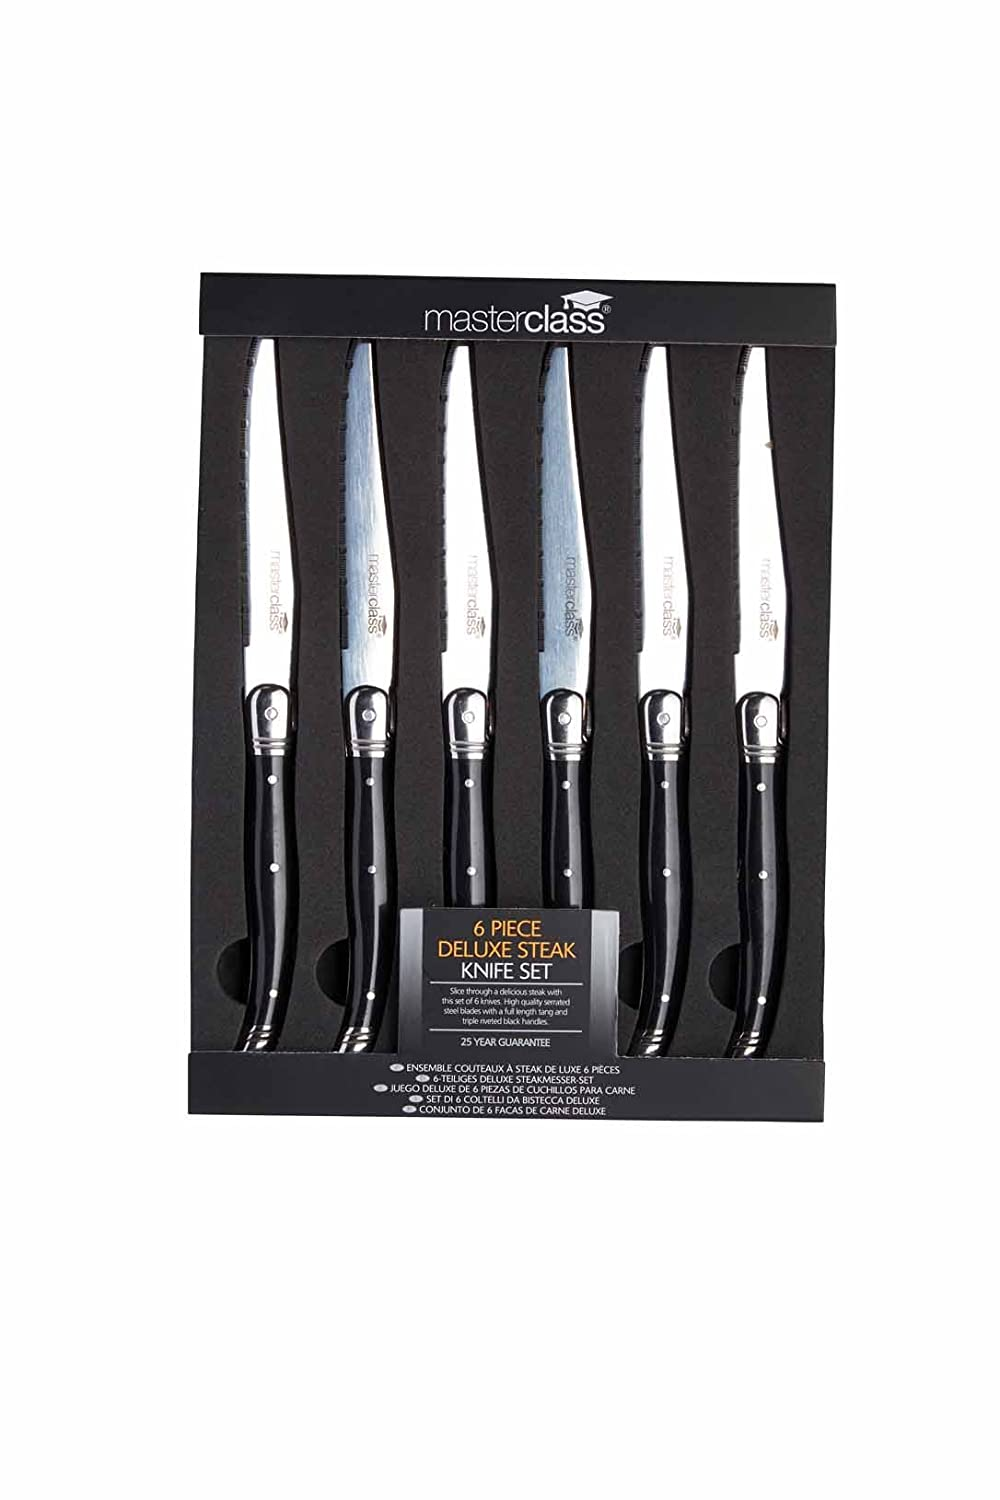 Amazon.com: Masterclass Deluxe Stainless Steel STEAK KNIFE ...